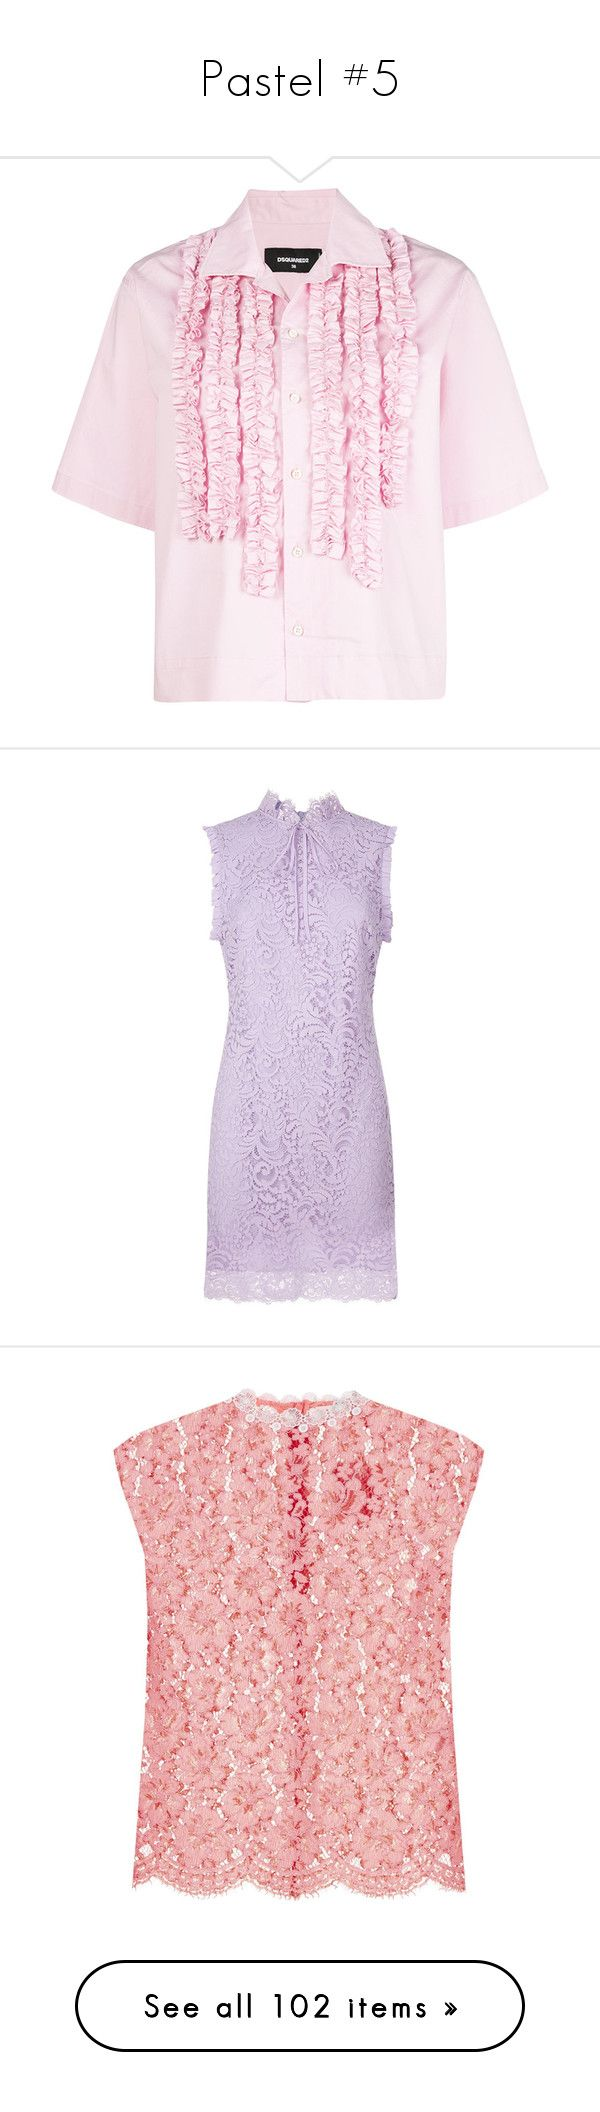 """Pastel #5"" by webuildbridgesnotwalls ❤ liked on Polyvore featuring tops, short sleeve collared shirts, short sleeve shirts, light pink top, slim shirt, button down collar shirts, dresses, purple lace cocktail dress, purple lace dresses and purple sleeveless dress"